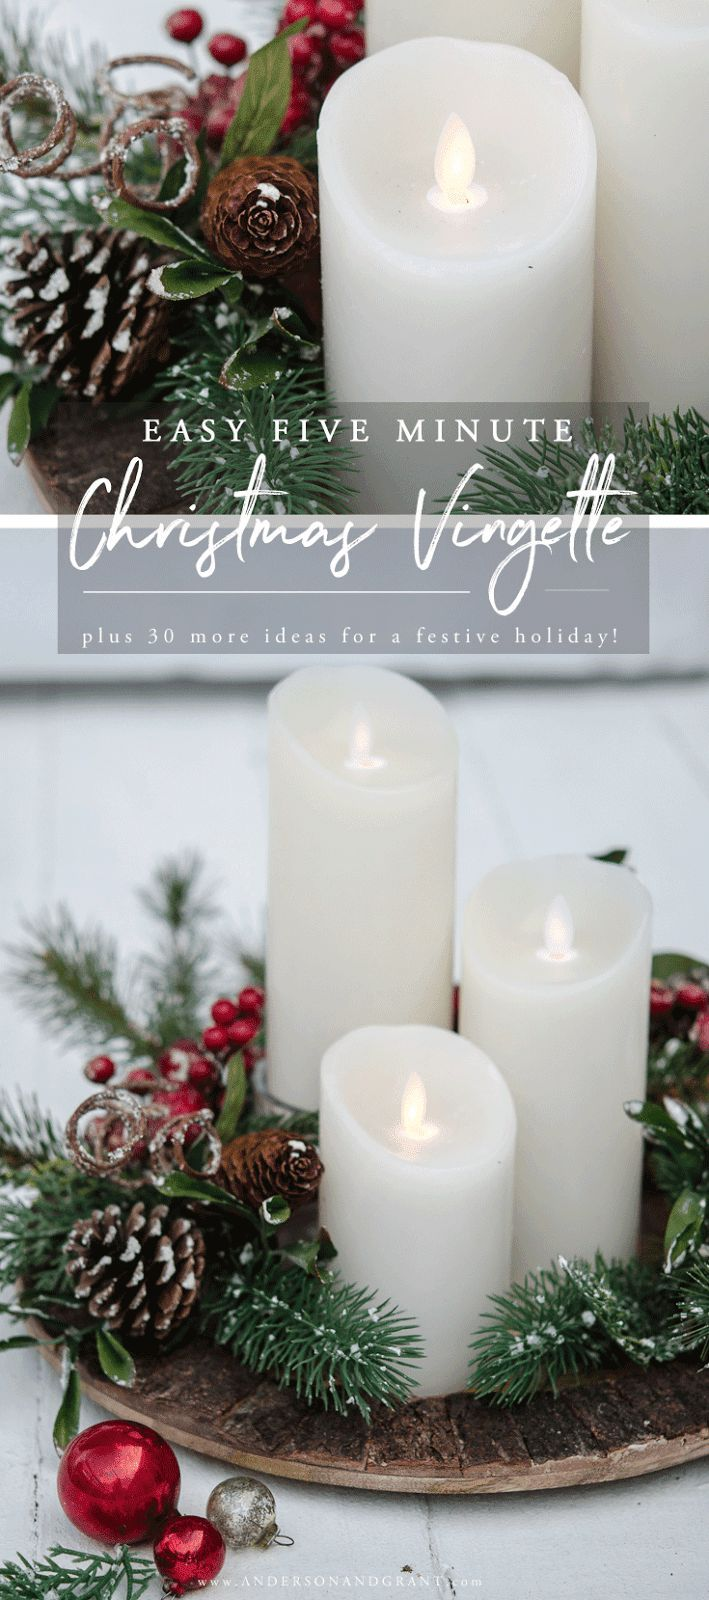 Easy 5 Minute Christmas Vignette and More Inspiration for Your ...